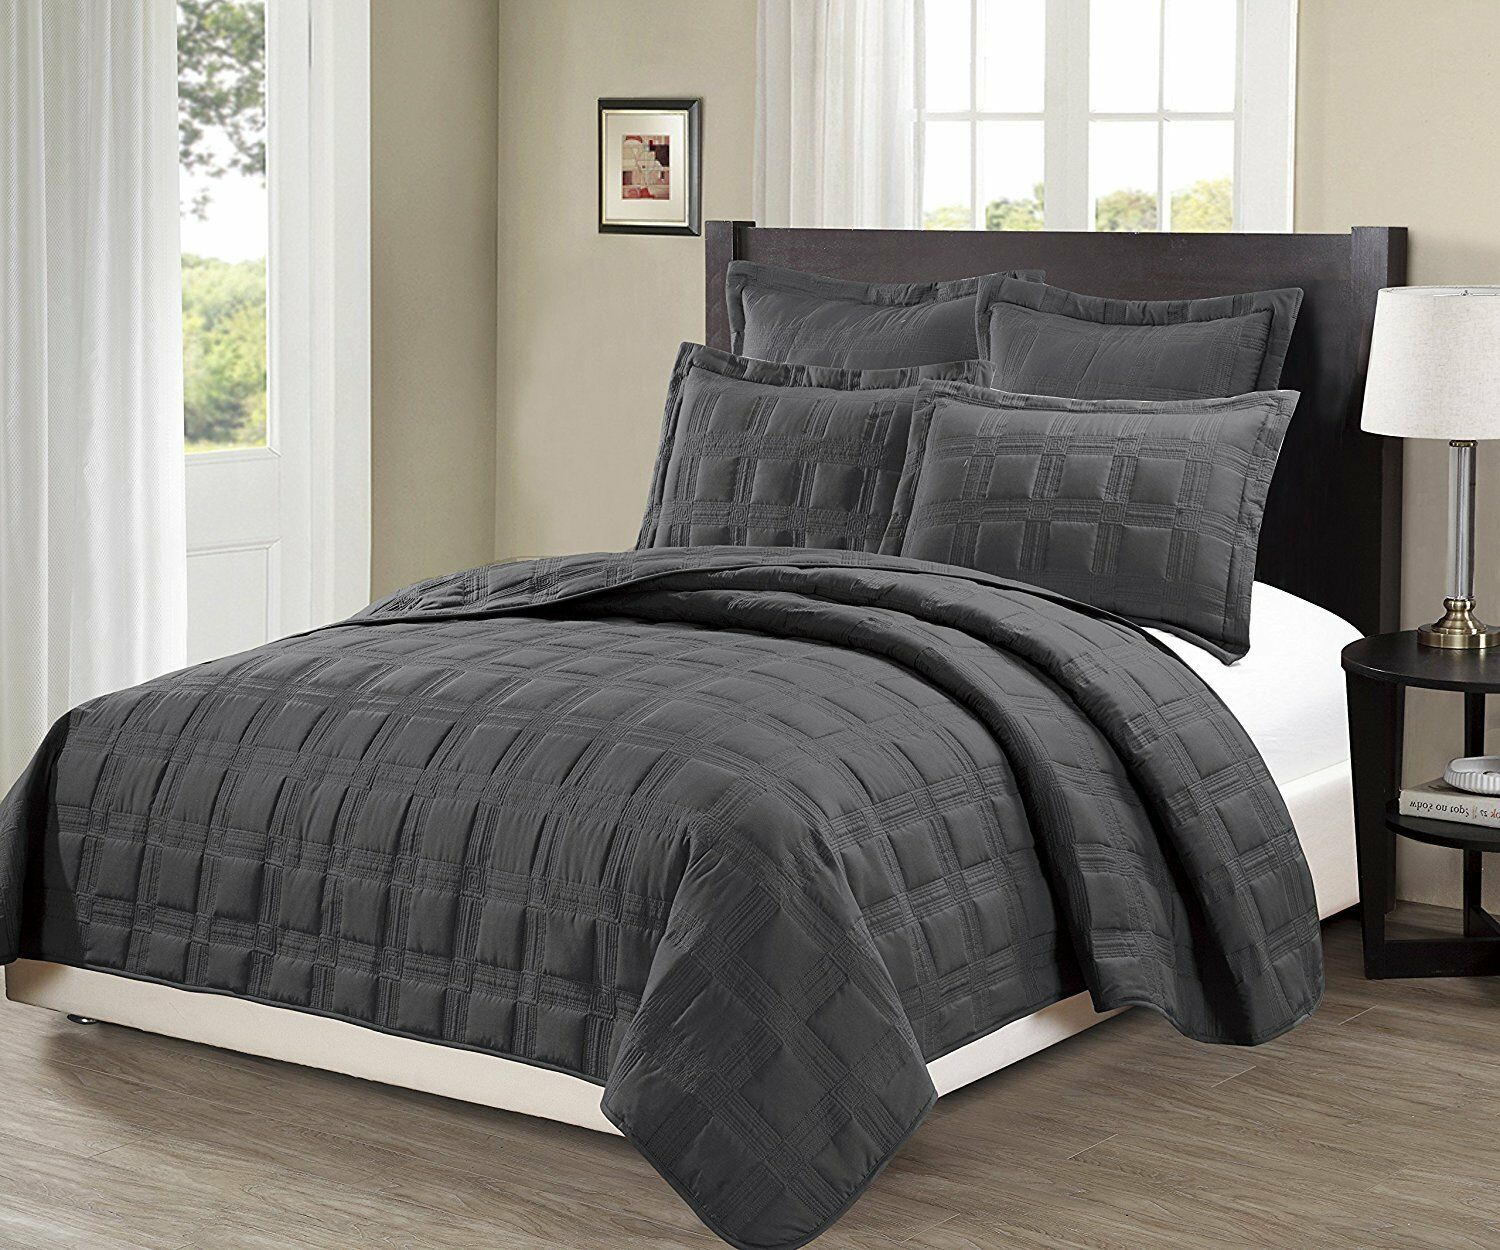 Fancy Linen 3pc OverGröße Target Quilted Embroidery Solid Charcoal Bedspread New